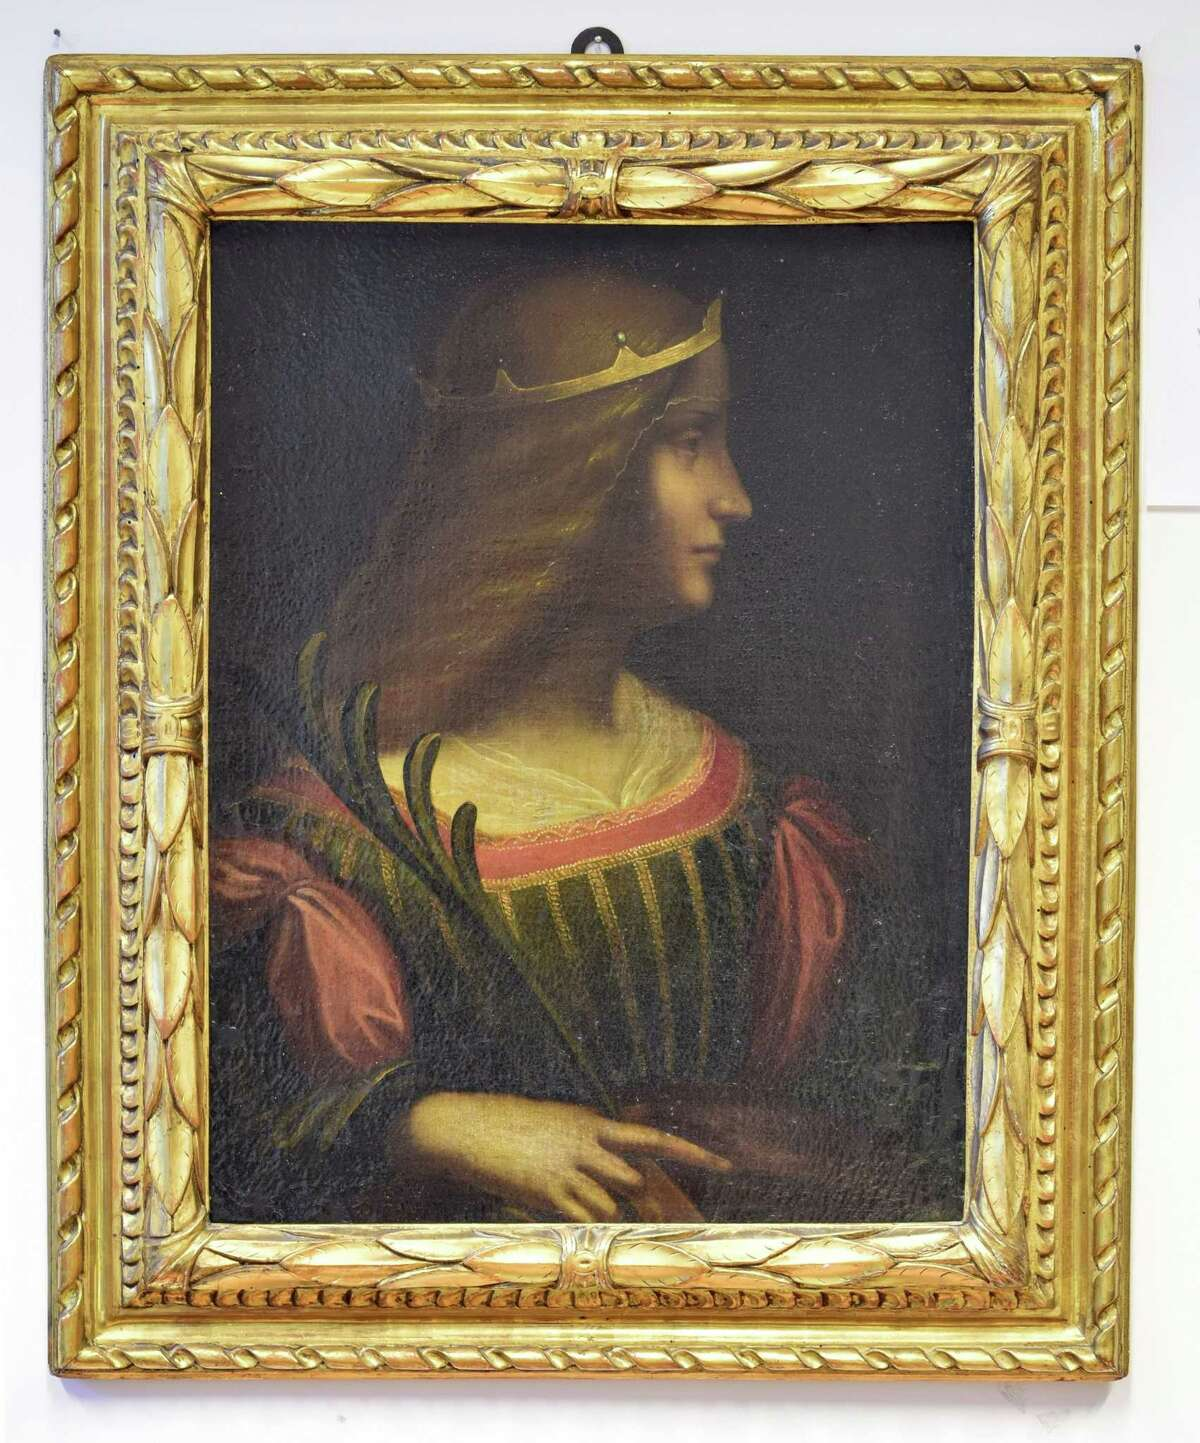 "This photo provided by the police of Swiss Canton Tessin shows the painting, ""Ritratto di Isabella d'Este,"" which was seized by the police of Ticino Tuesday. Italian authorities have ordered the seizure from a Swiss bank vault of the portrait, which may have been painted by Leonardo da Vinci and which they said was illegally removed from Italy. Italian financial police said Tuesday that Swiss authorities had seized the portrait of the Renaissance-era noblewoman, valued at 95 million euros (US$ 107 million). Isabella D'Este was also painted twice by Titian."